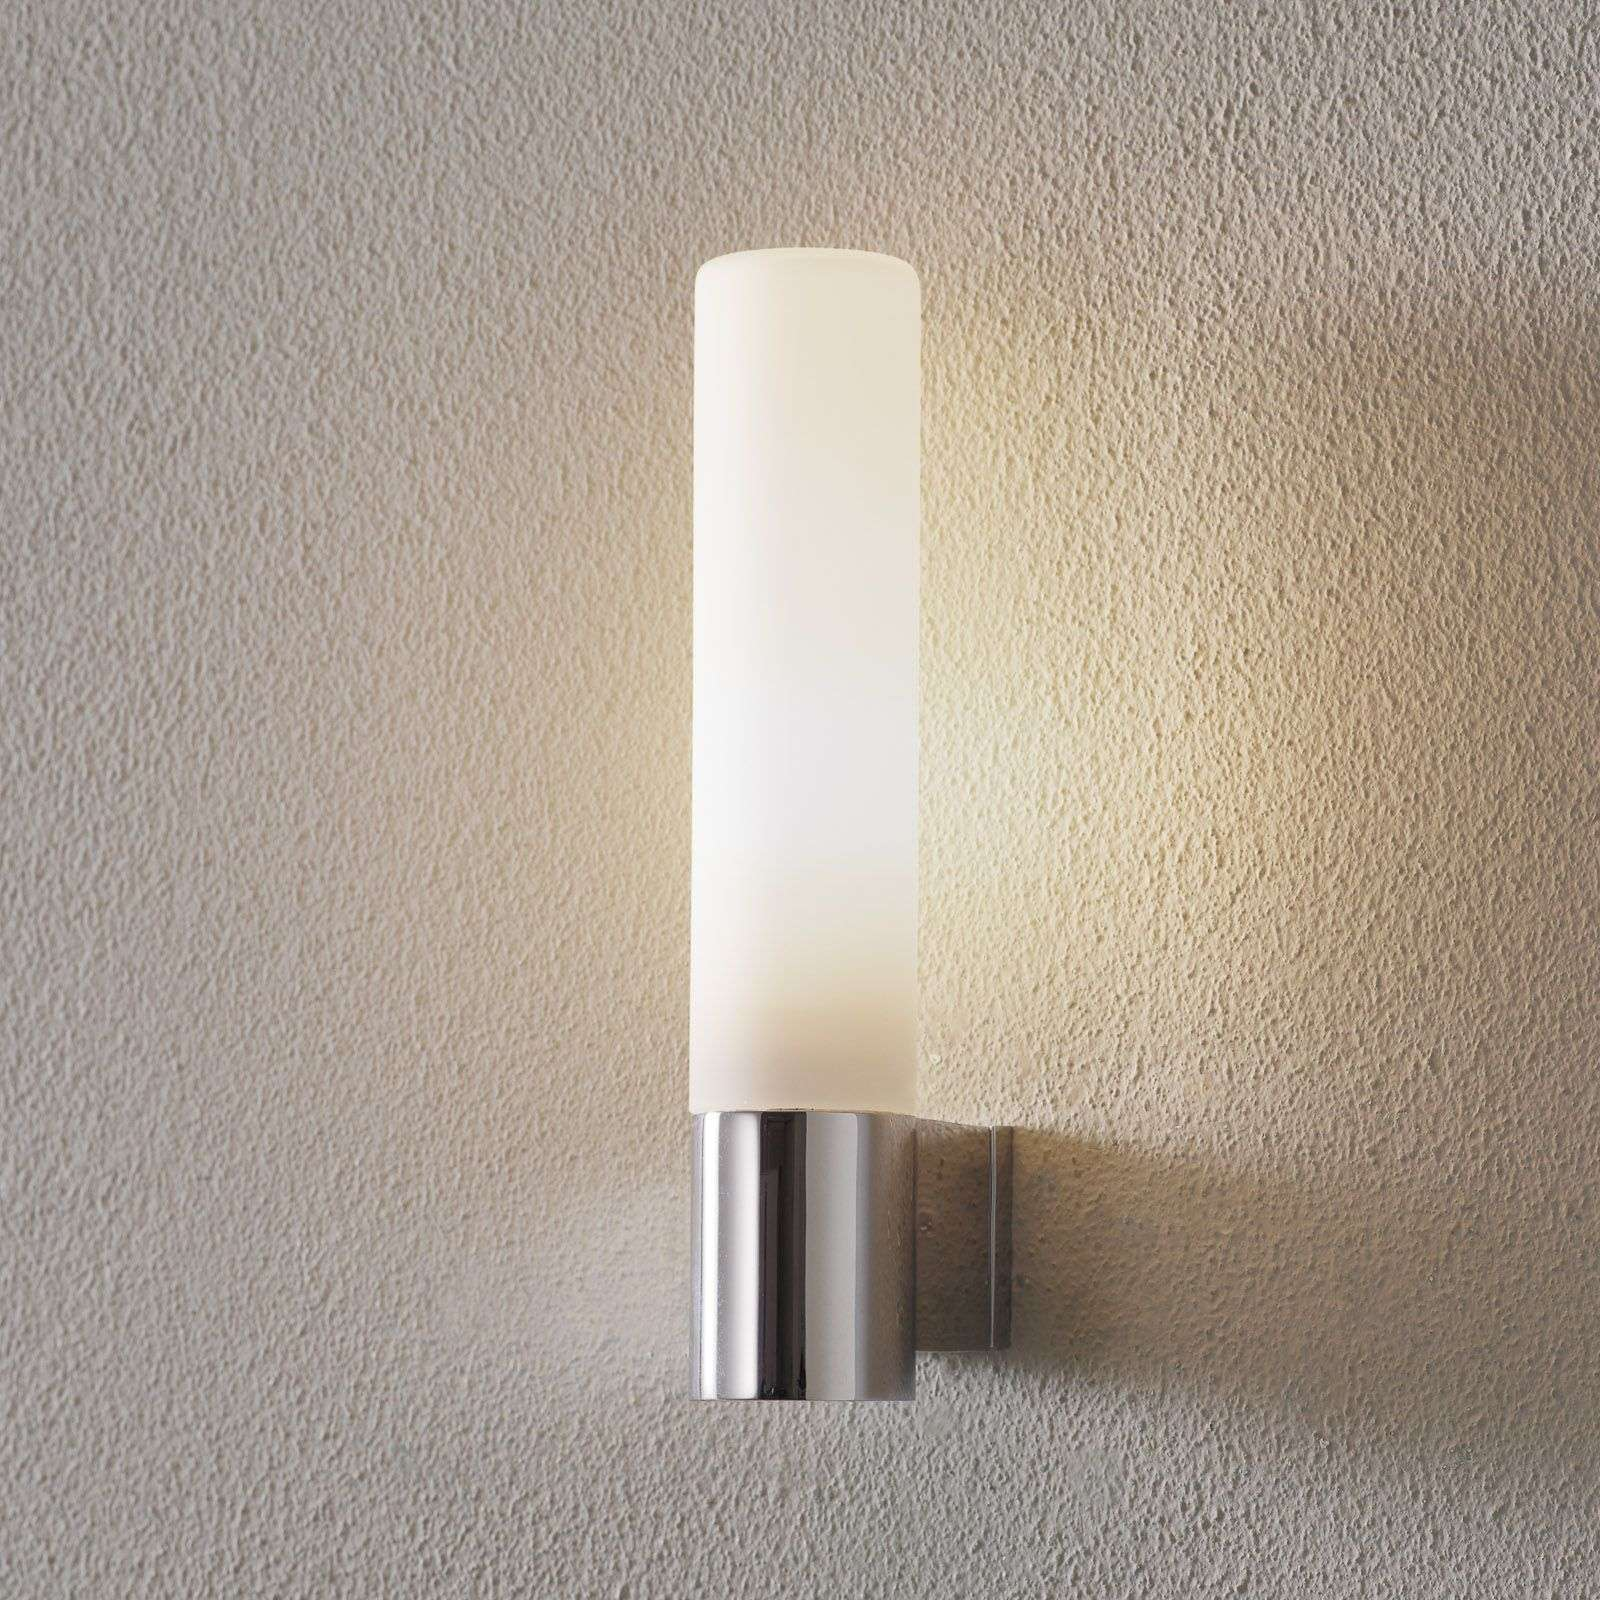 Bari Bathroom Wall Light with White Glass-1020012-32